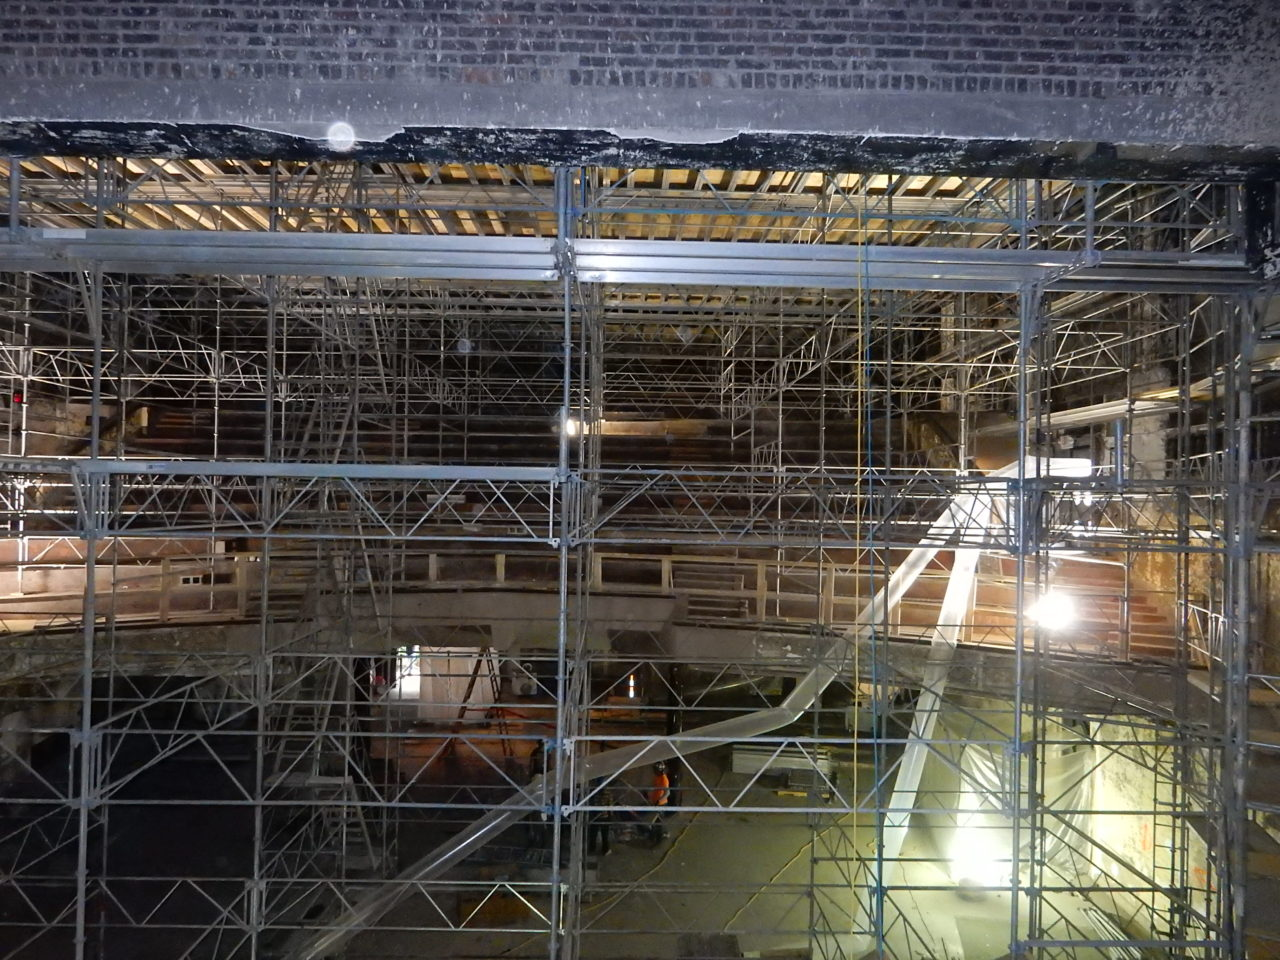 Full to the brim with abatement scaffolding - Fall 2017